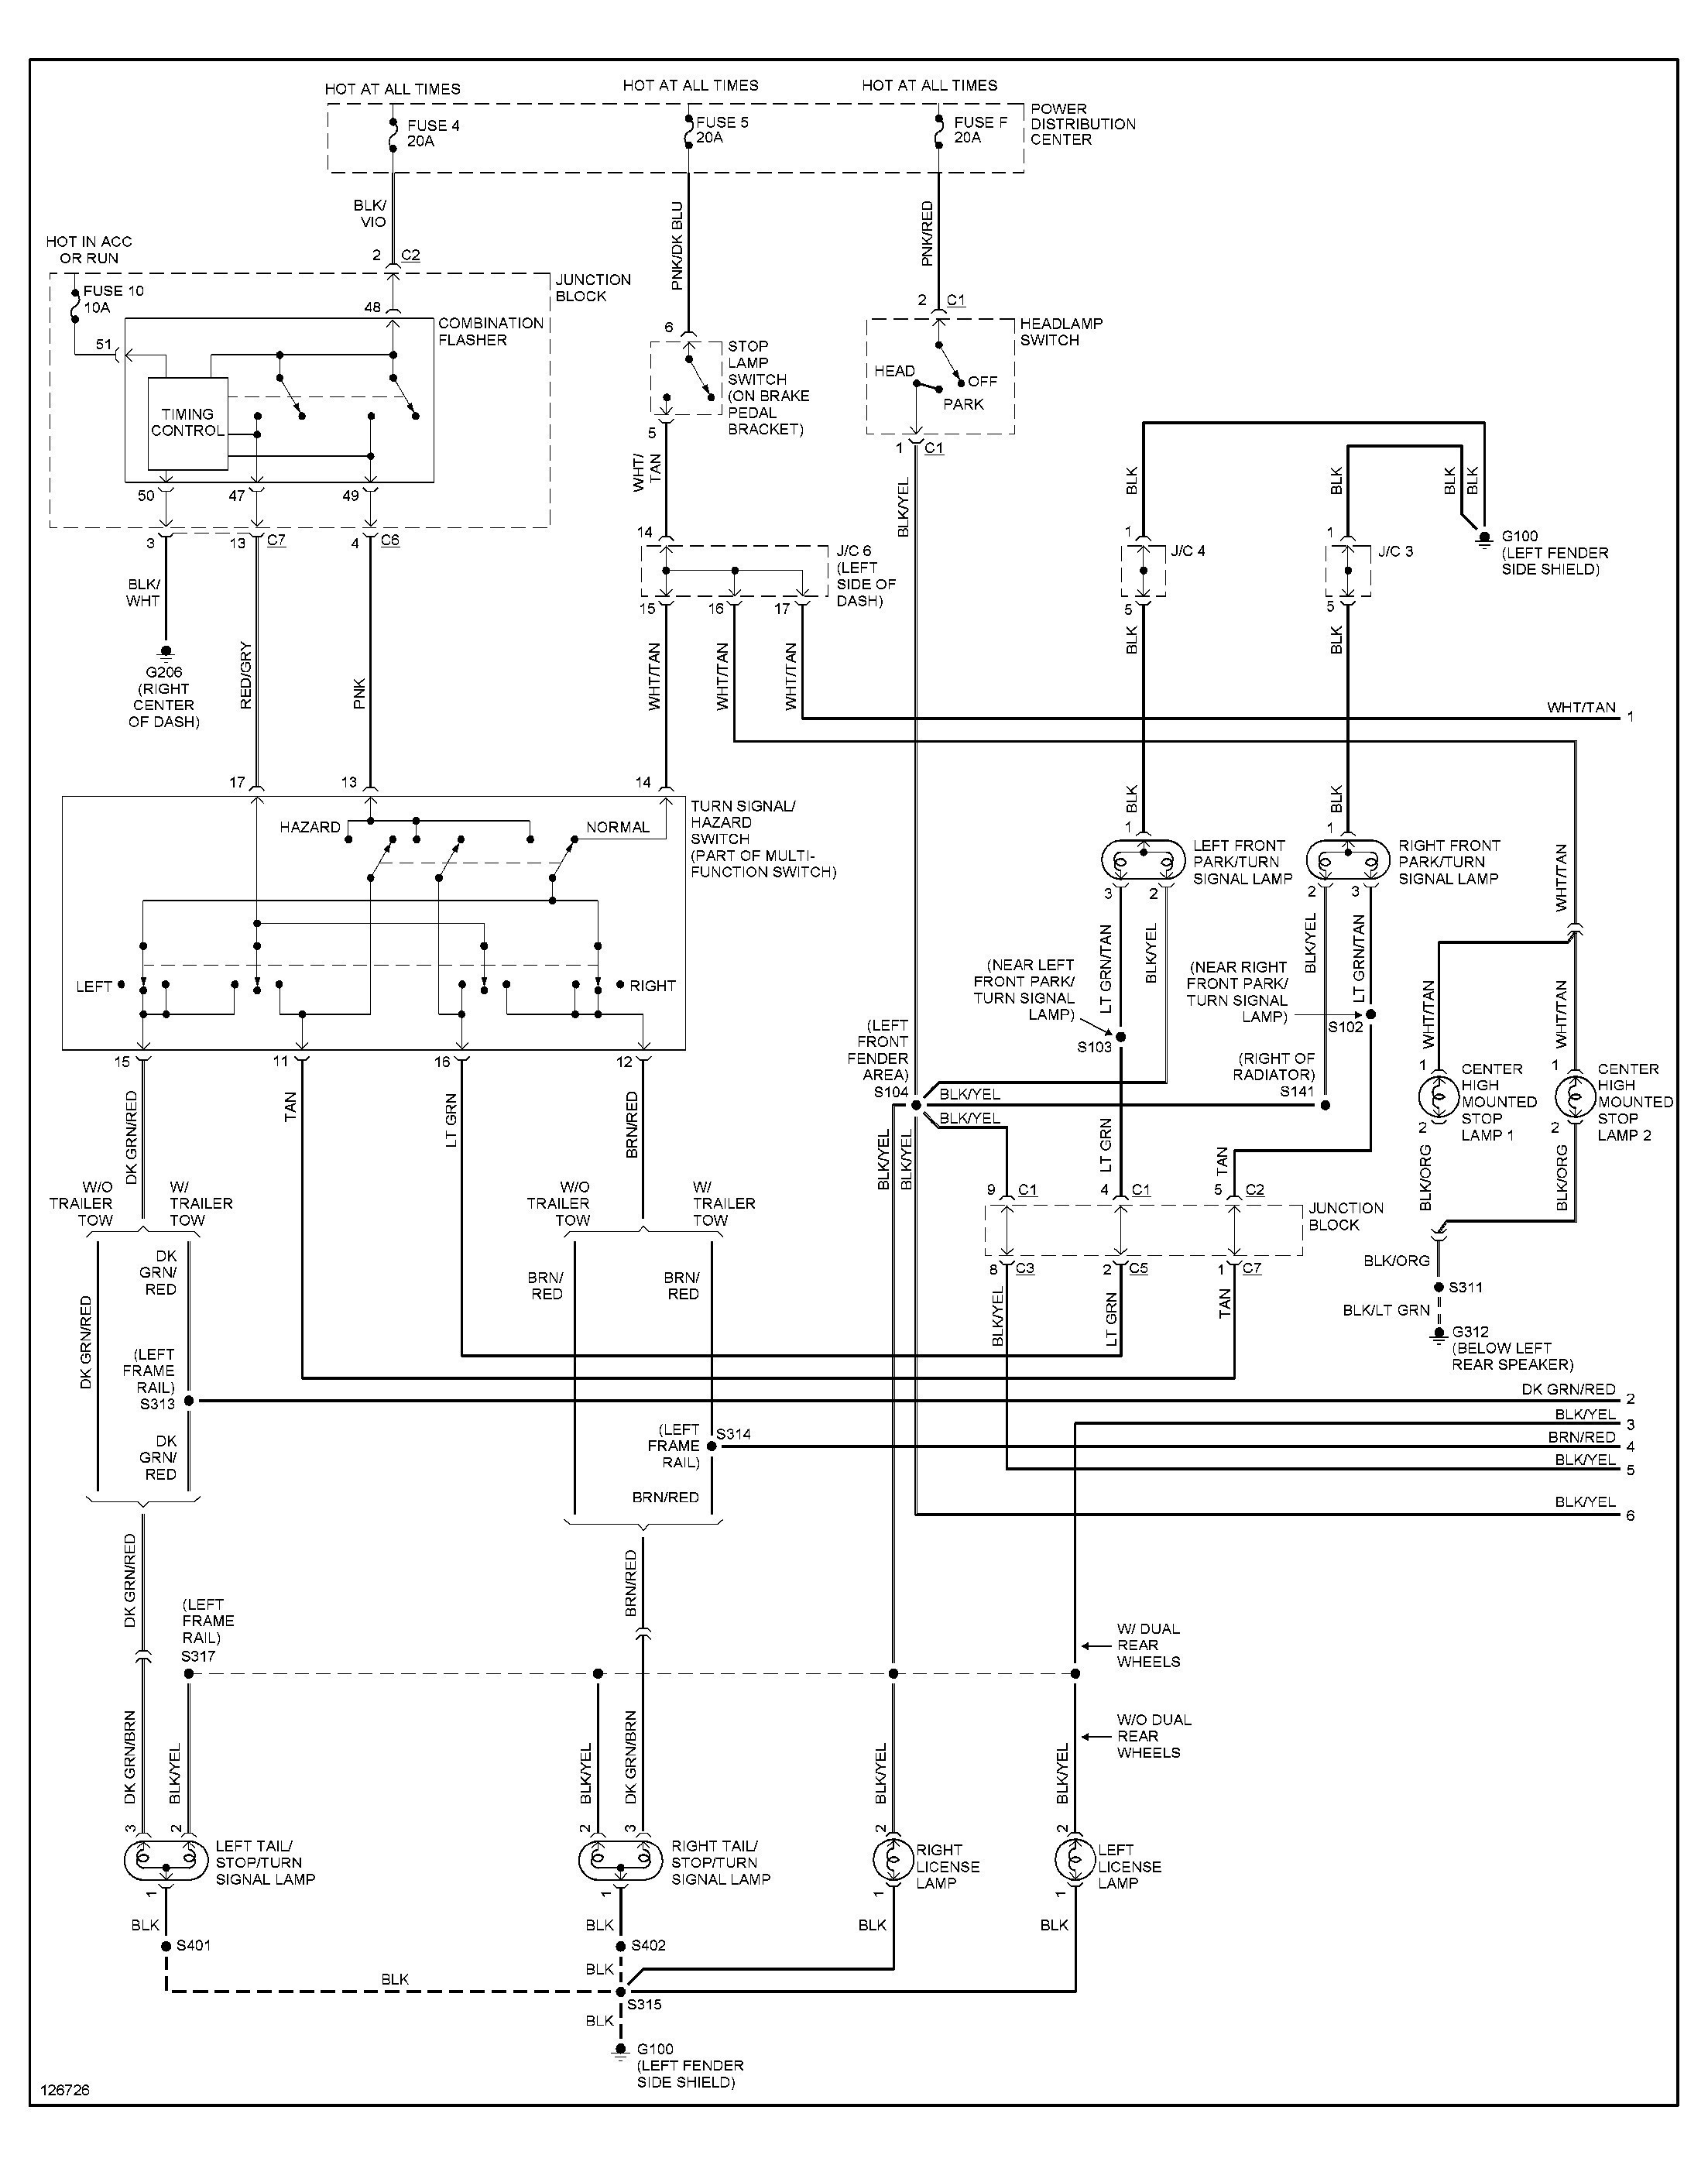 diagram] 2001 ram wire diagram full version hd quality wire diagram -  psychediagramme.legiodecima.it  diagram database